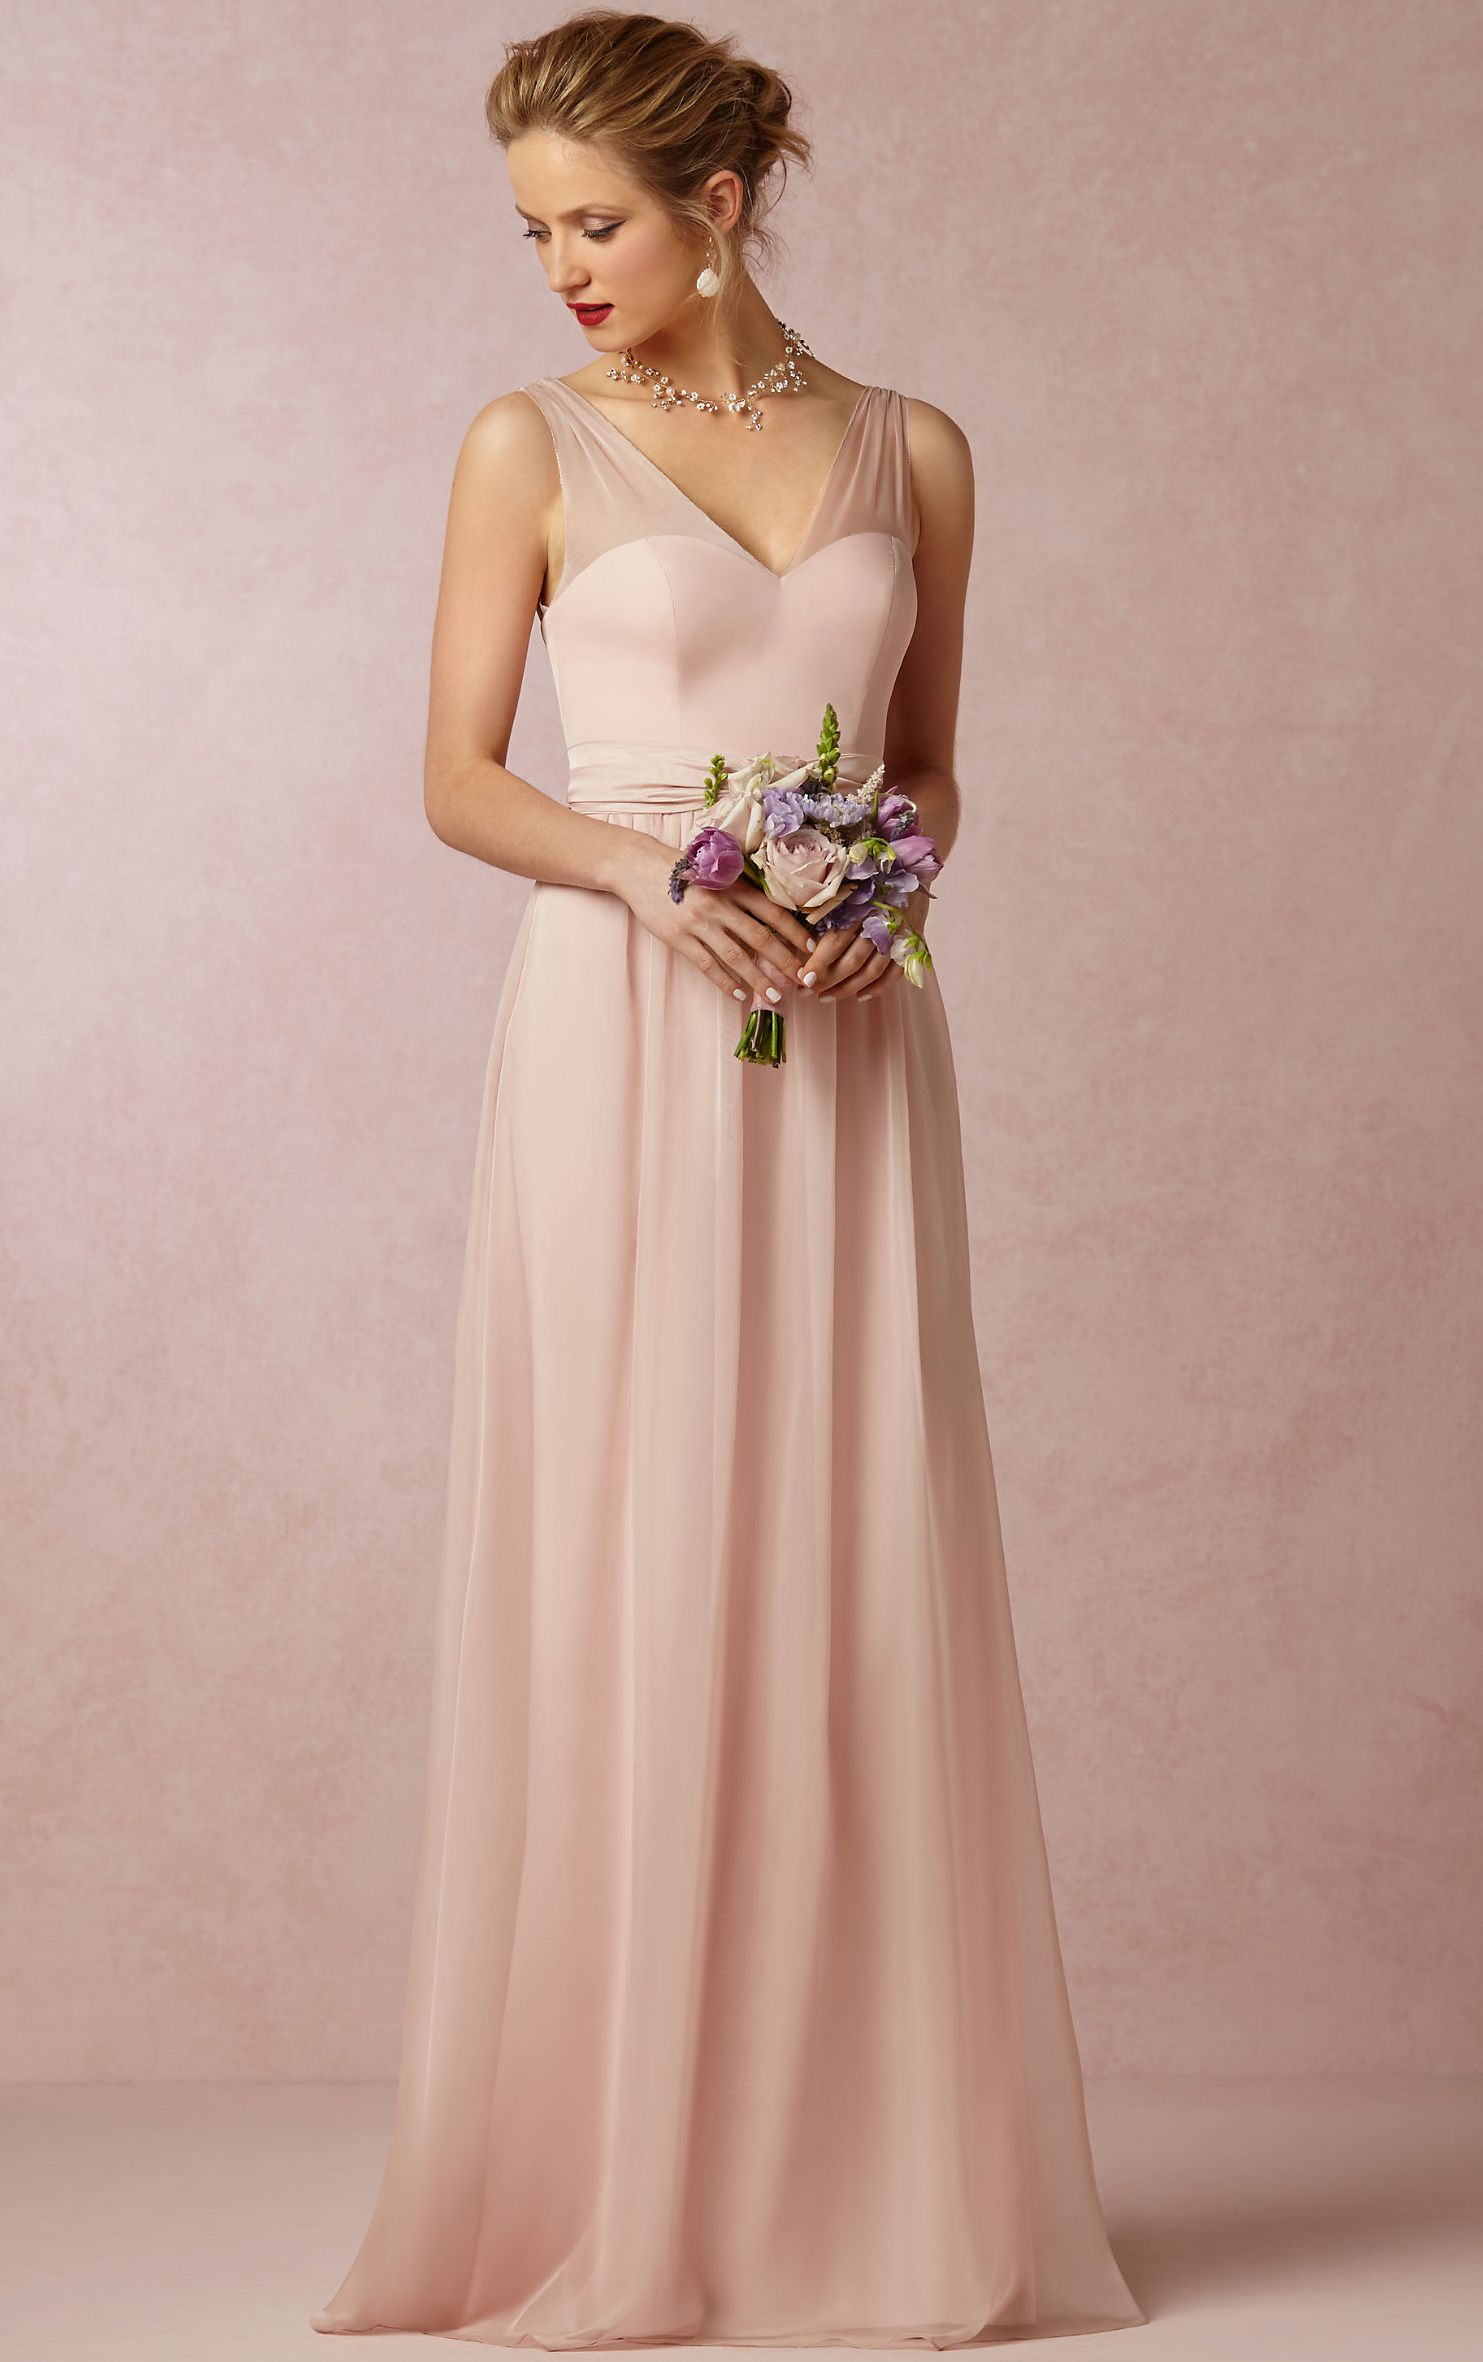 V-neck A-line Sleeveless Natural Floor-length Bridesmaid Dresses_1 ...